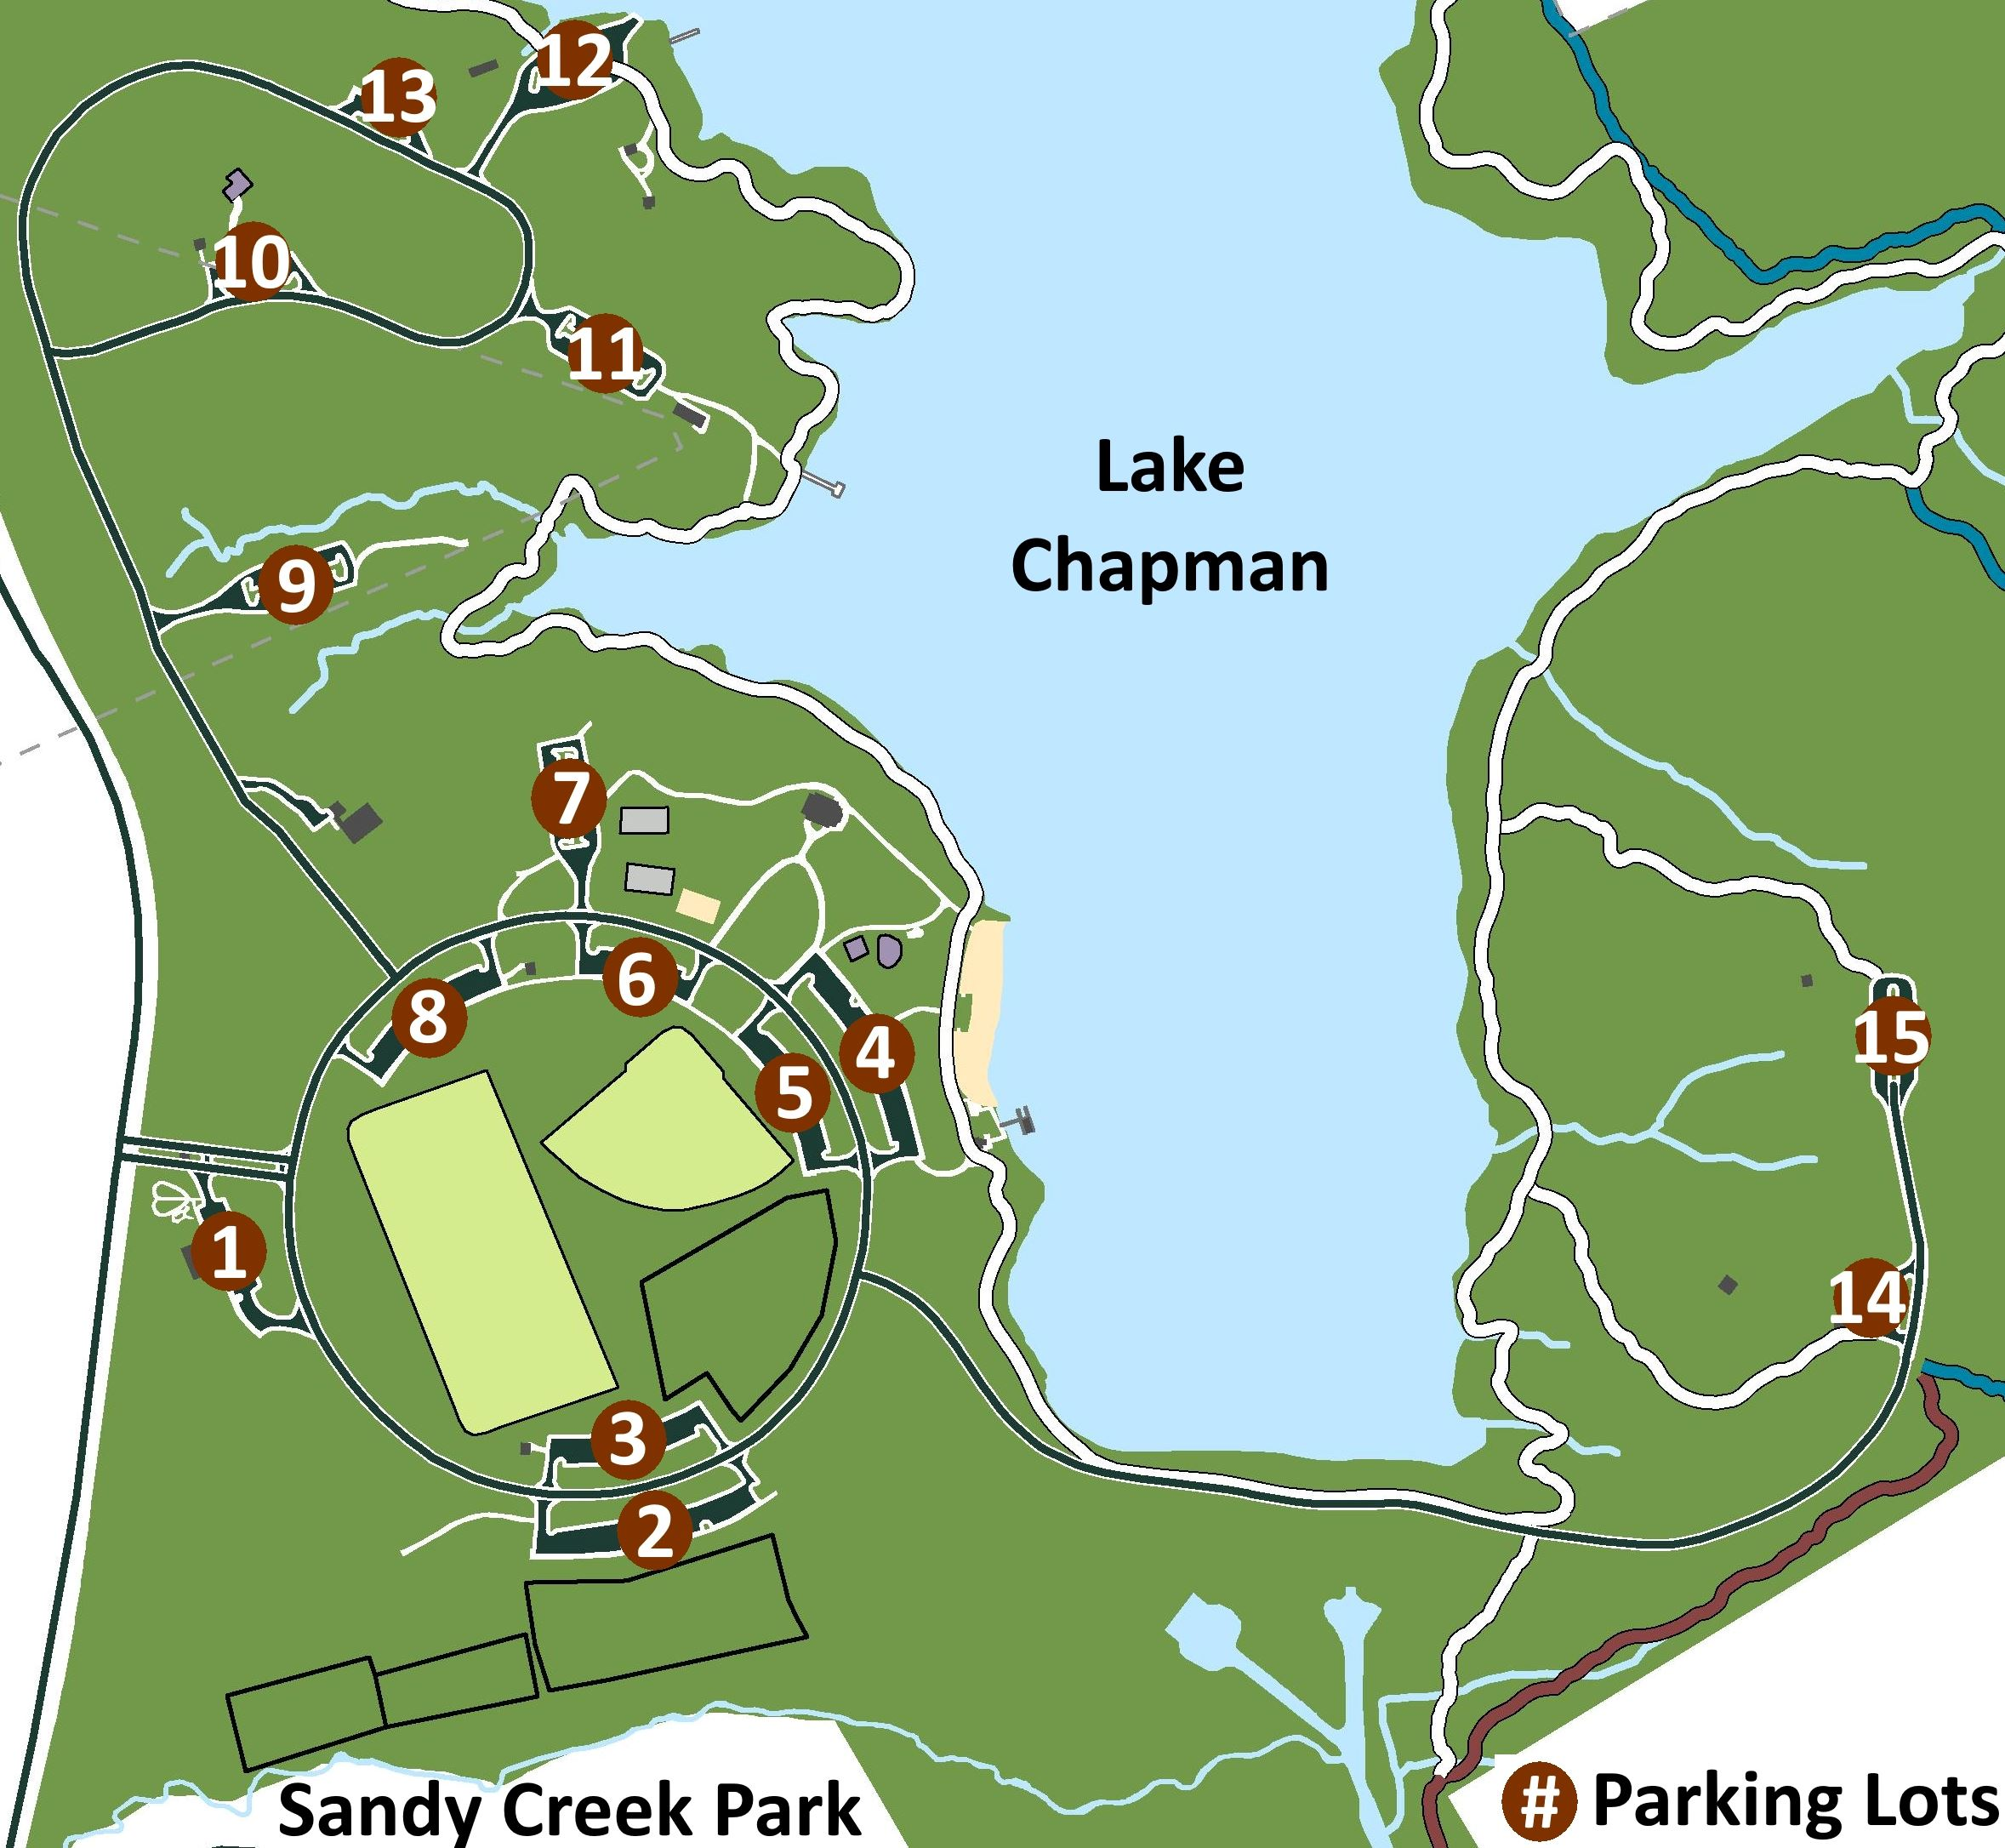 Map of Sandy Creek Park's Parking Lots.